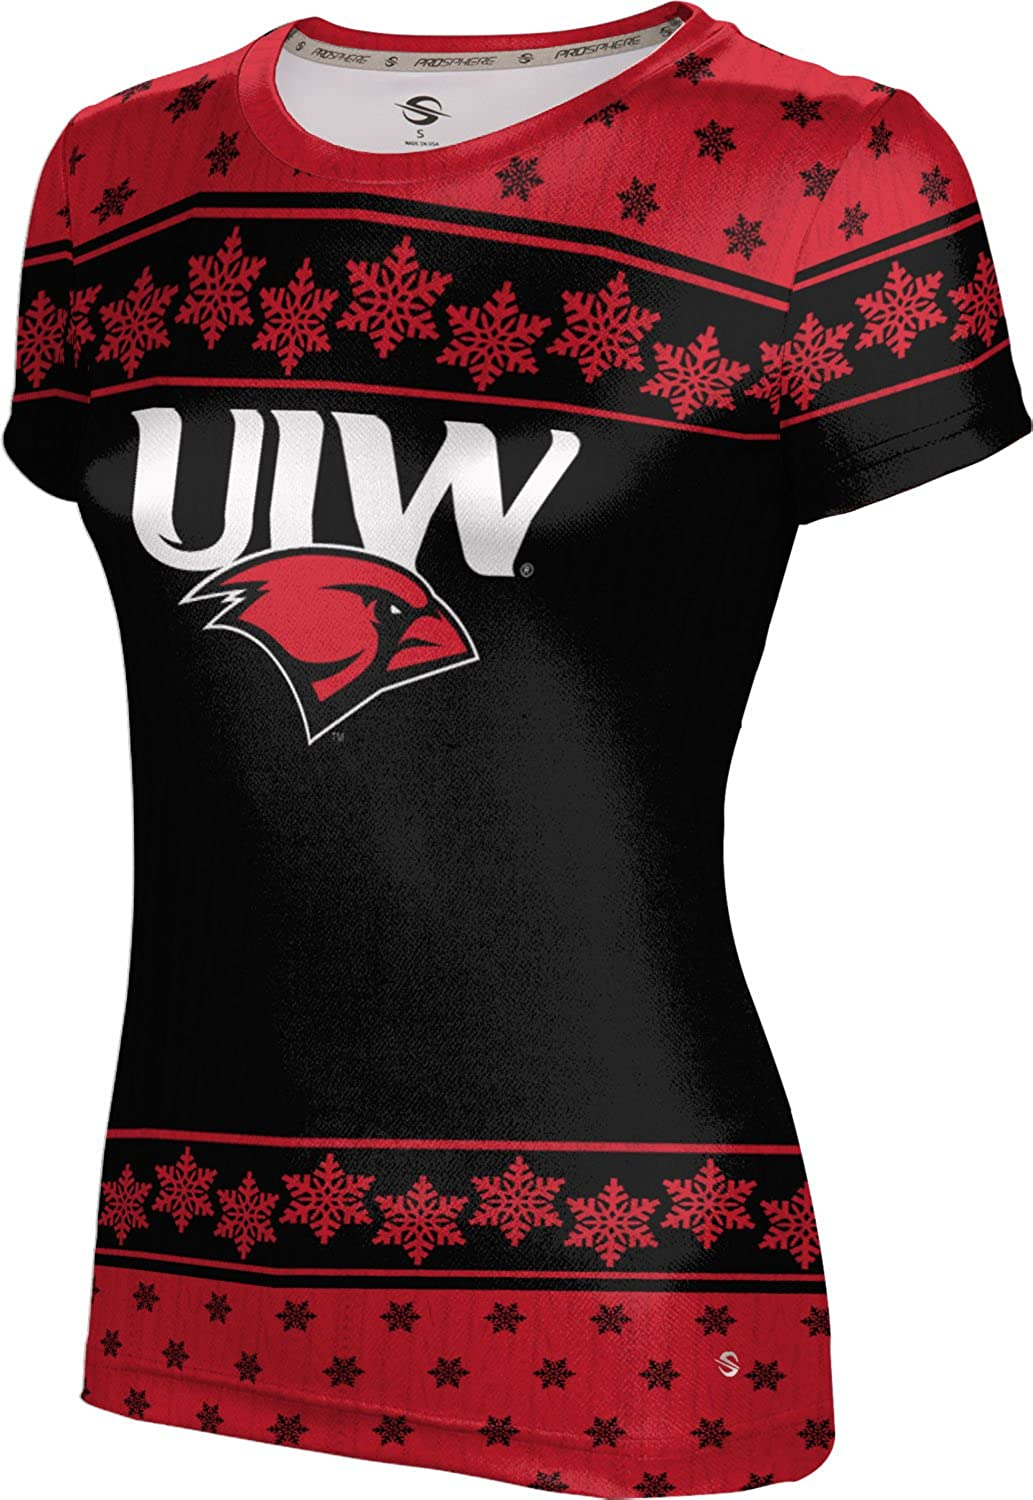 Women's University of the Incarnate Word Ugly Holiday Snowflake Tech Tee